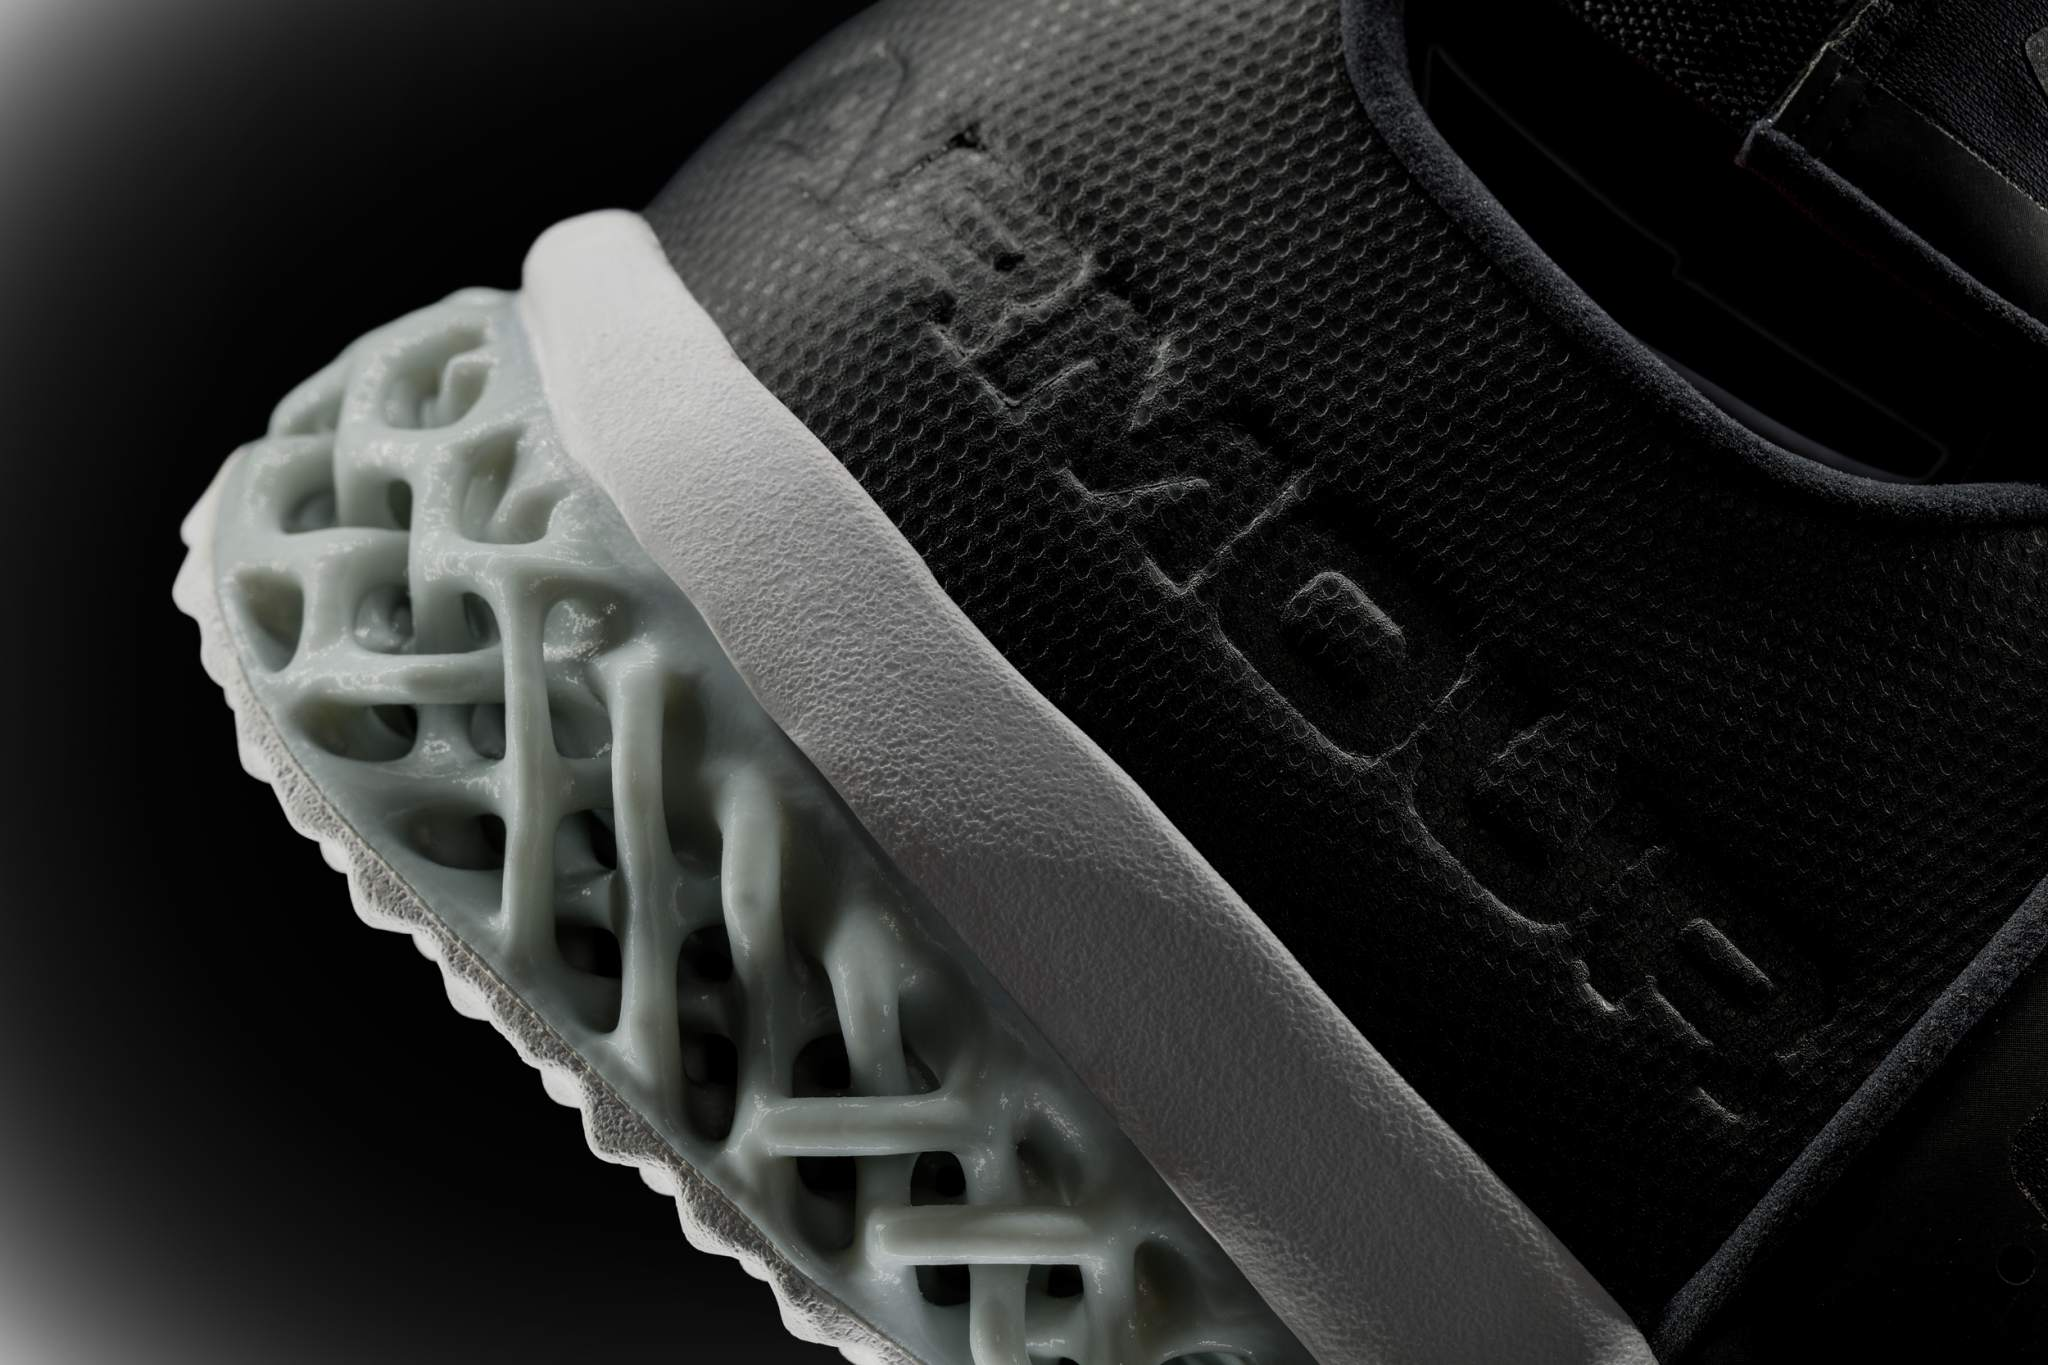 3D printed midsole of the Architech Futurist. Image via Under Armour.